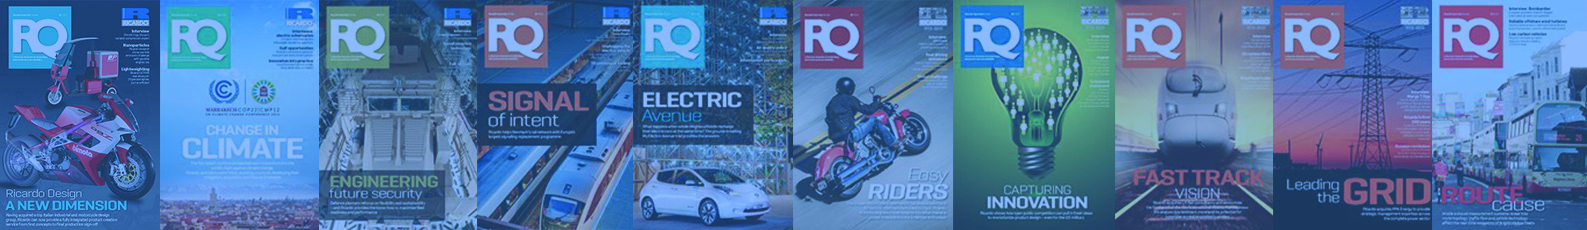 Ricardo Quarterly magazine - 2018